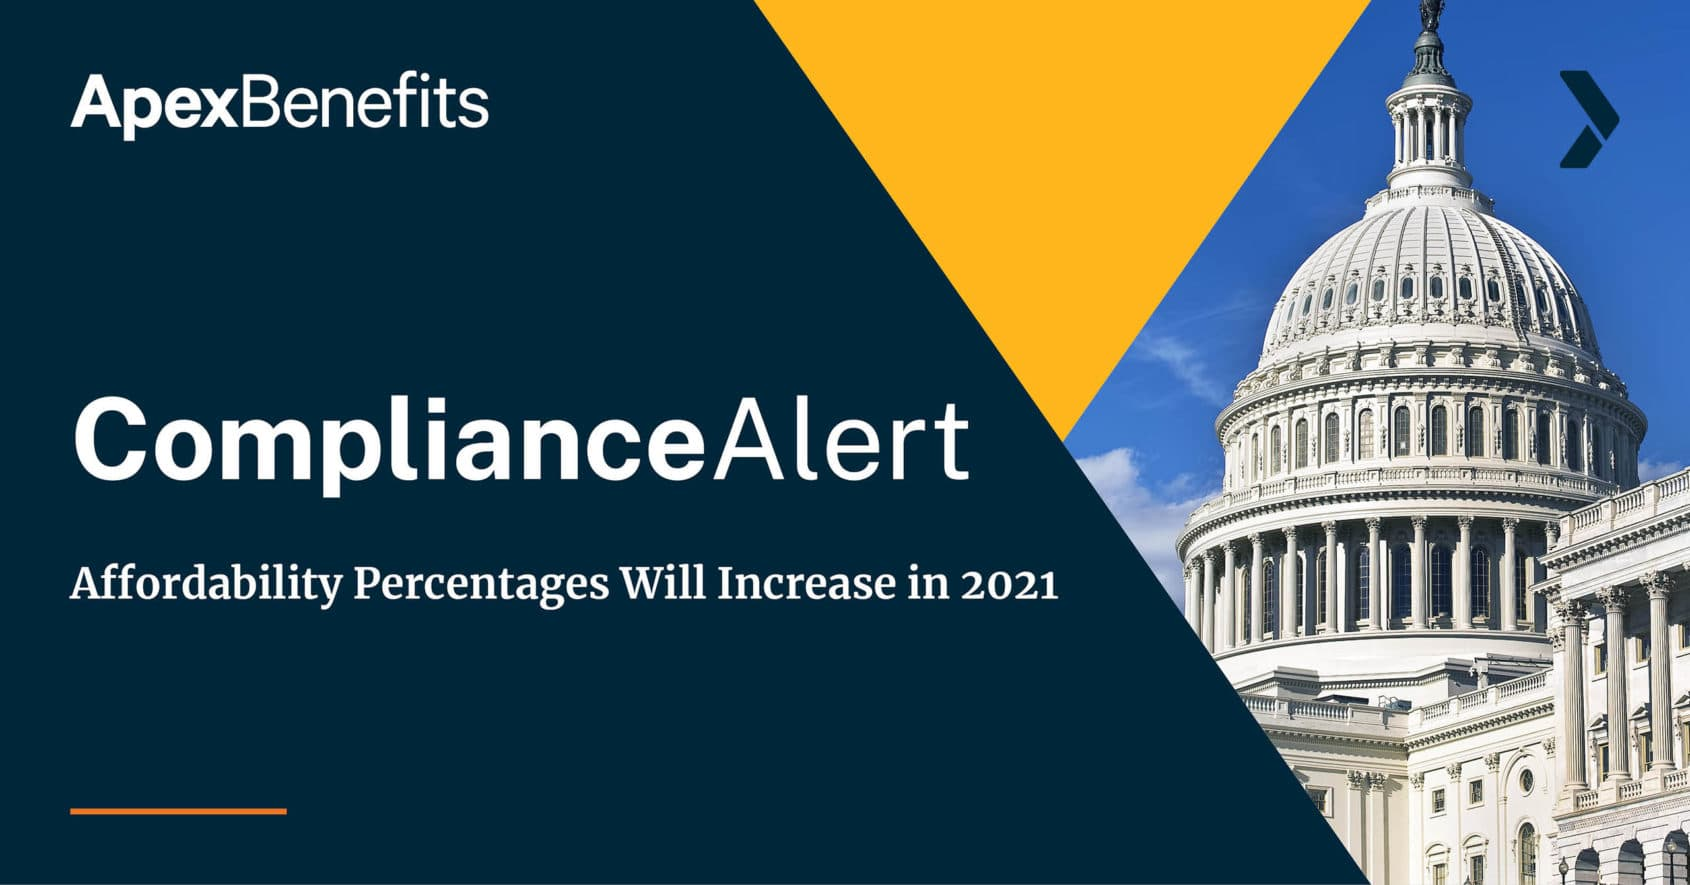 Affordability Percentages Will Increase 2021